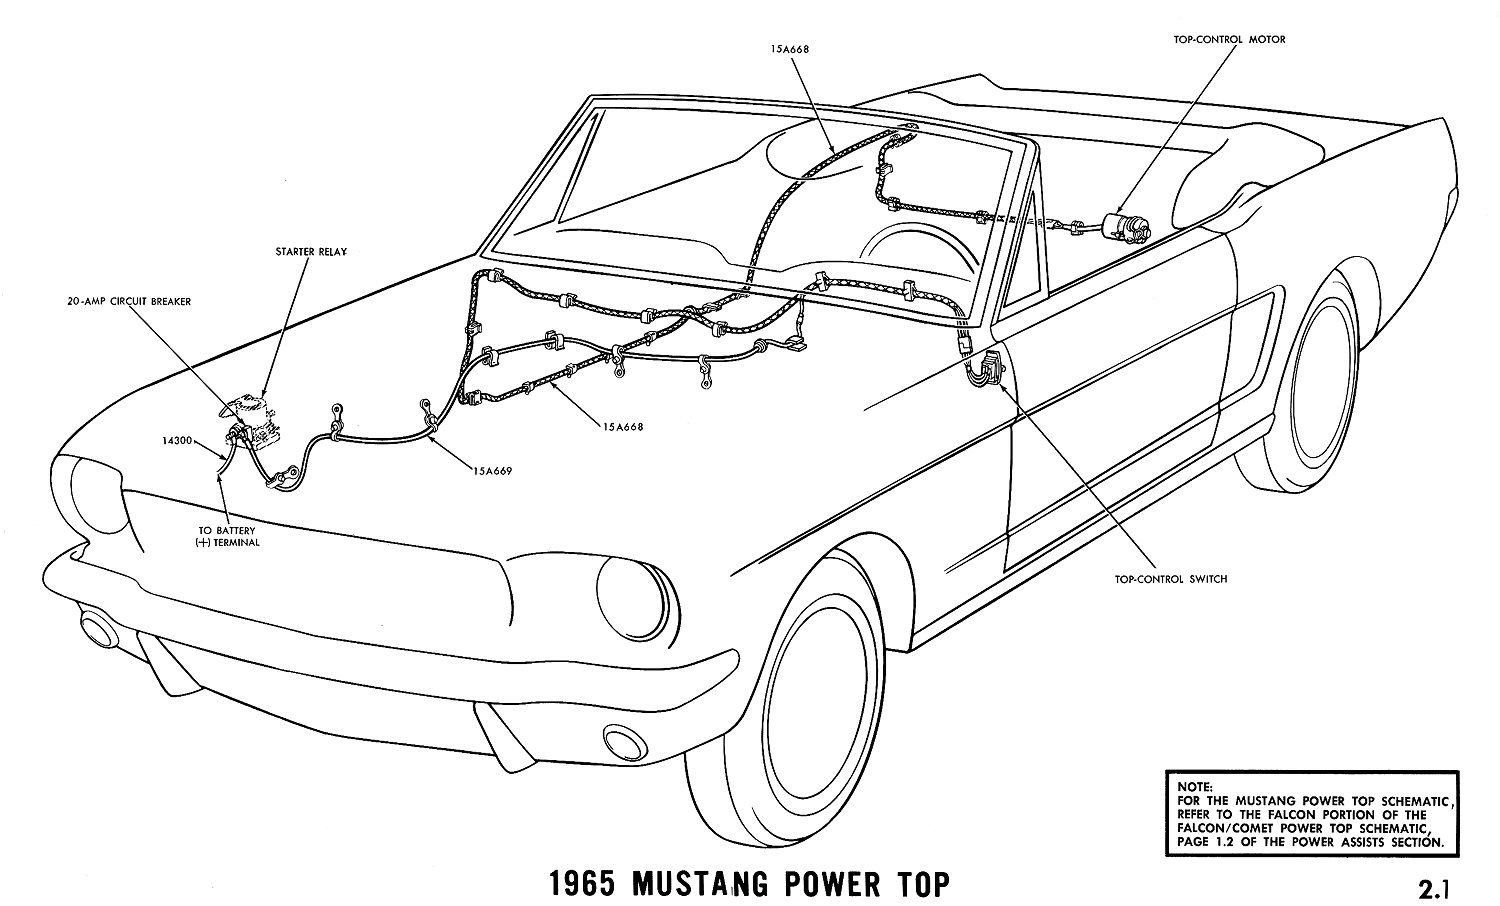 1965j 1965 mustang wiring diagrams average joe restoration 1965 thunderbird alternator wiring diagram at crackthecode.co